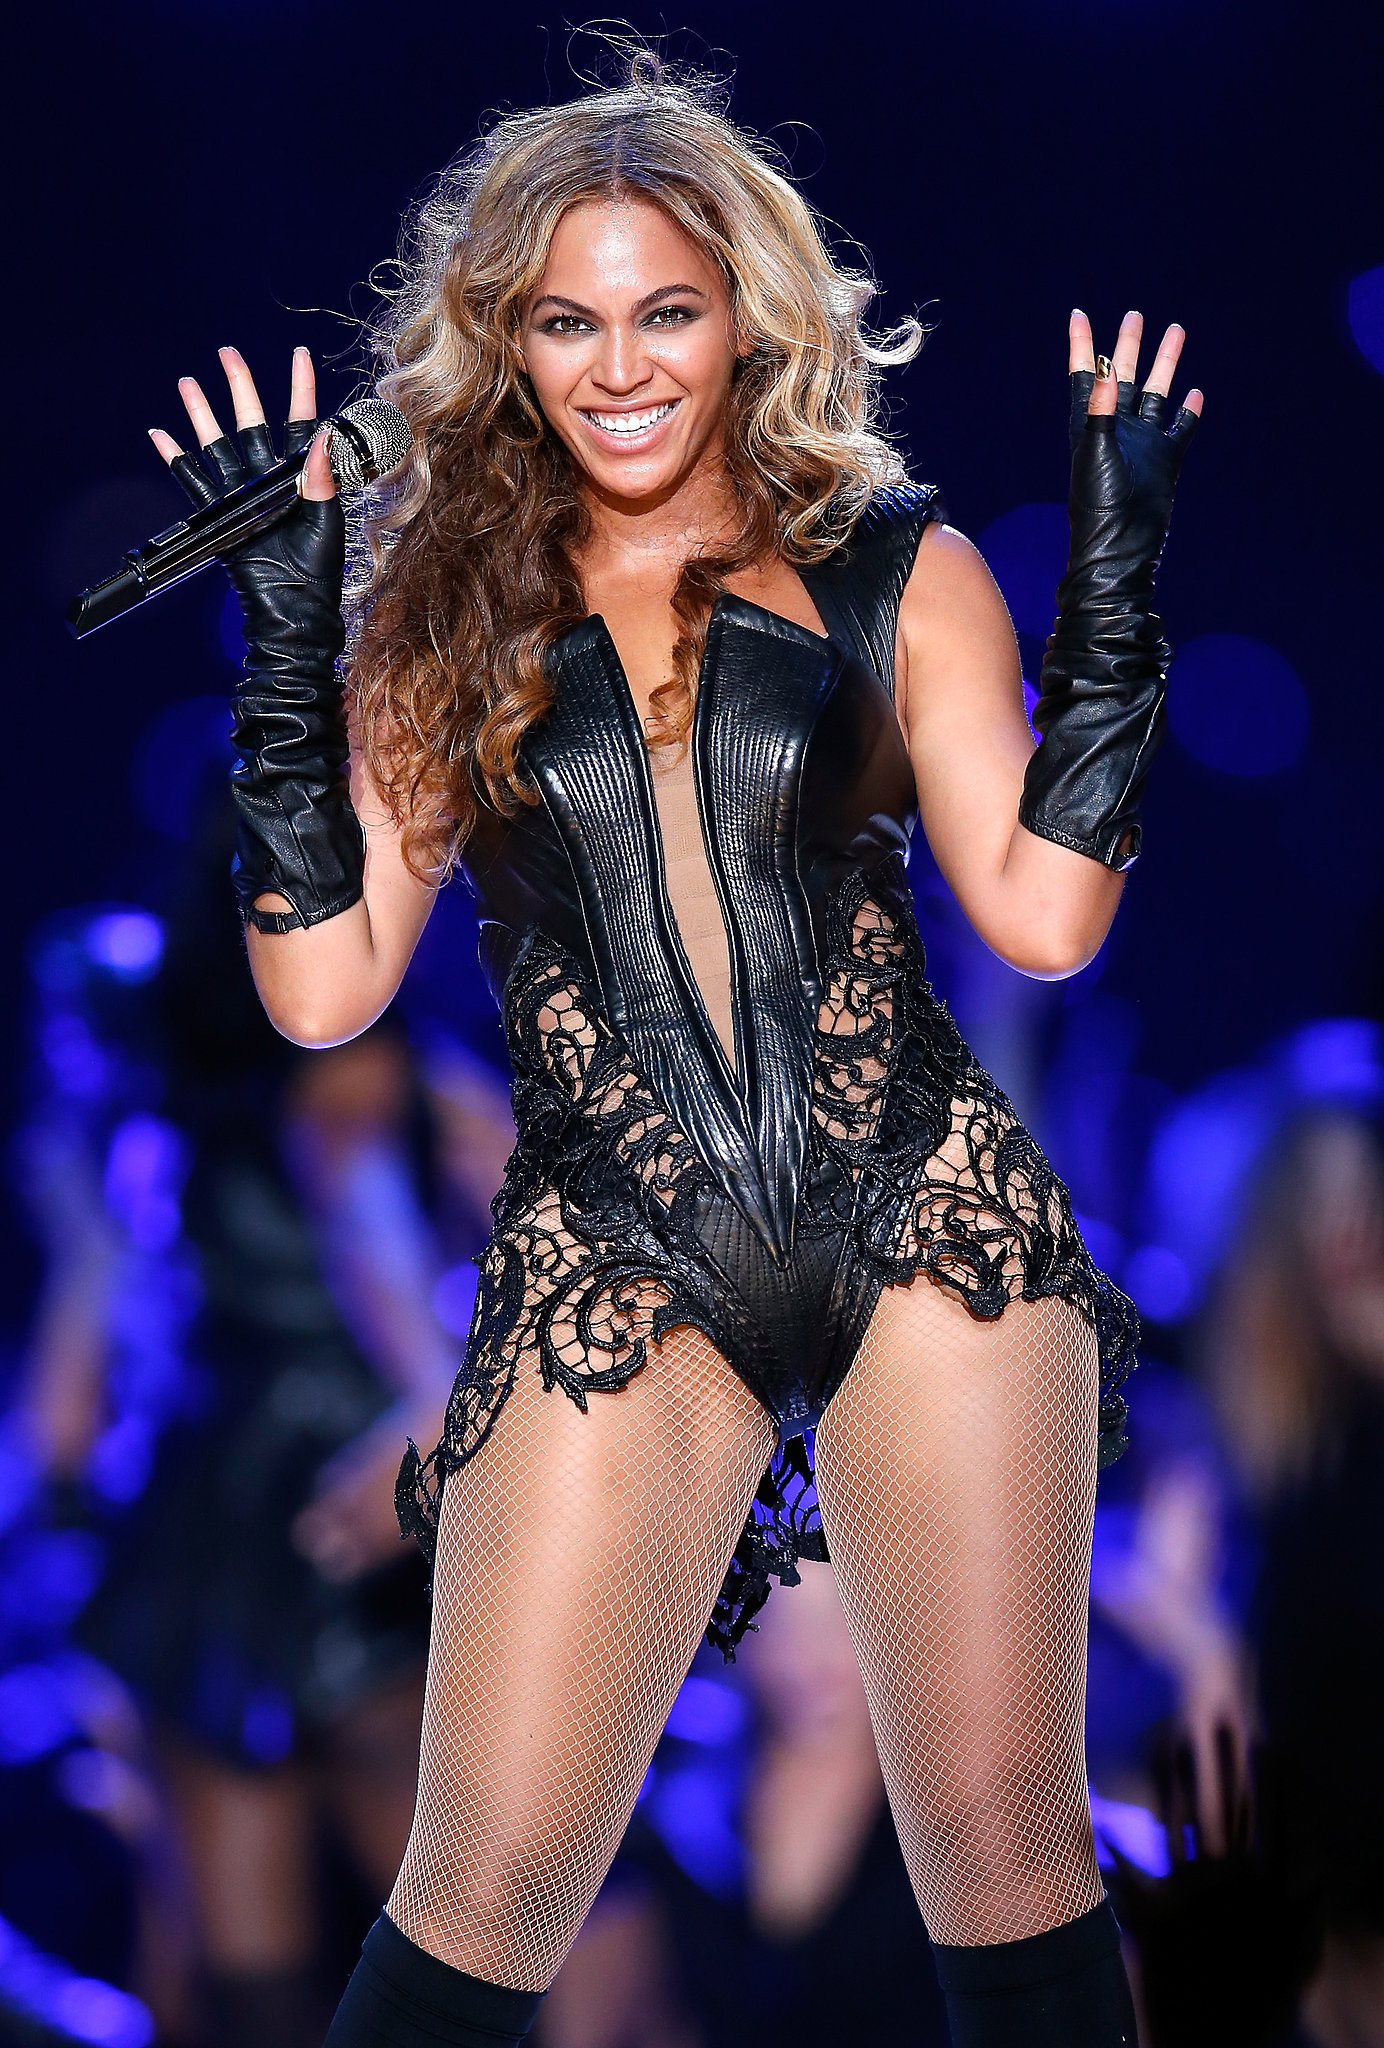 Beyoncé rocked the Feb. 3 Super Bowl halftime show in New Orleans wit